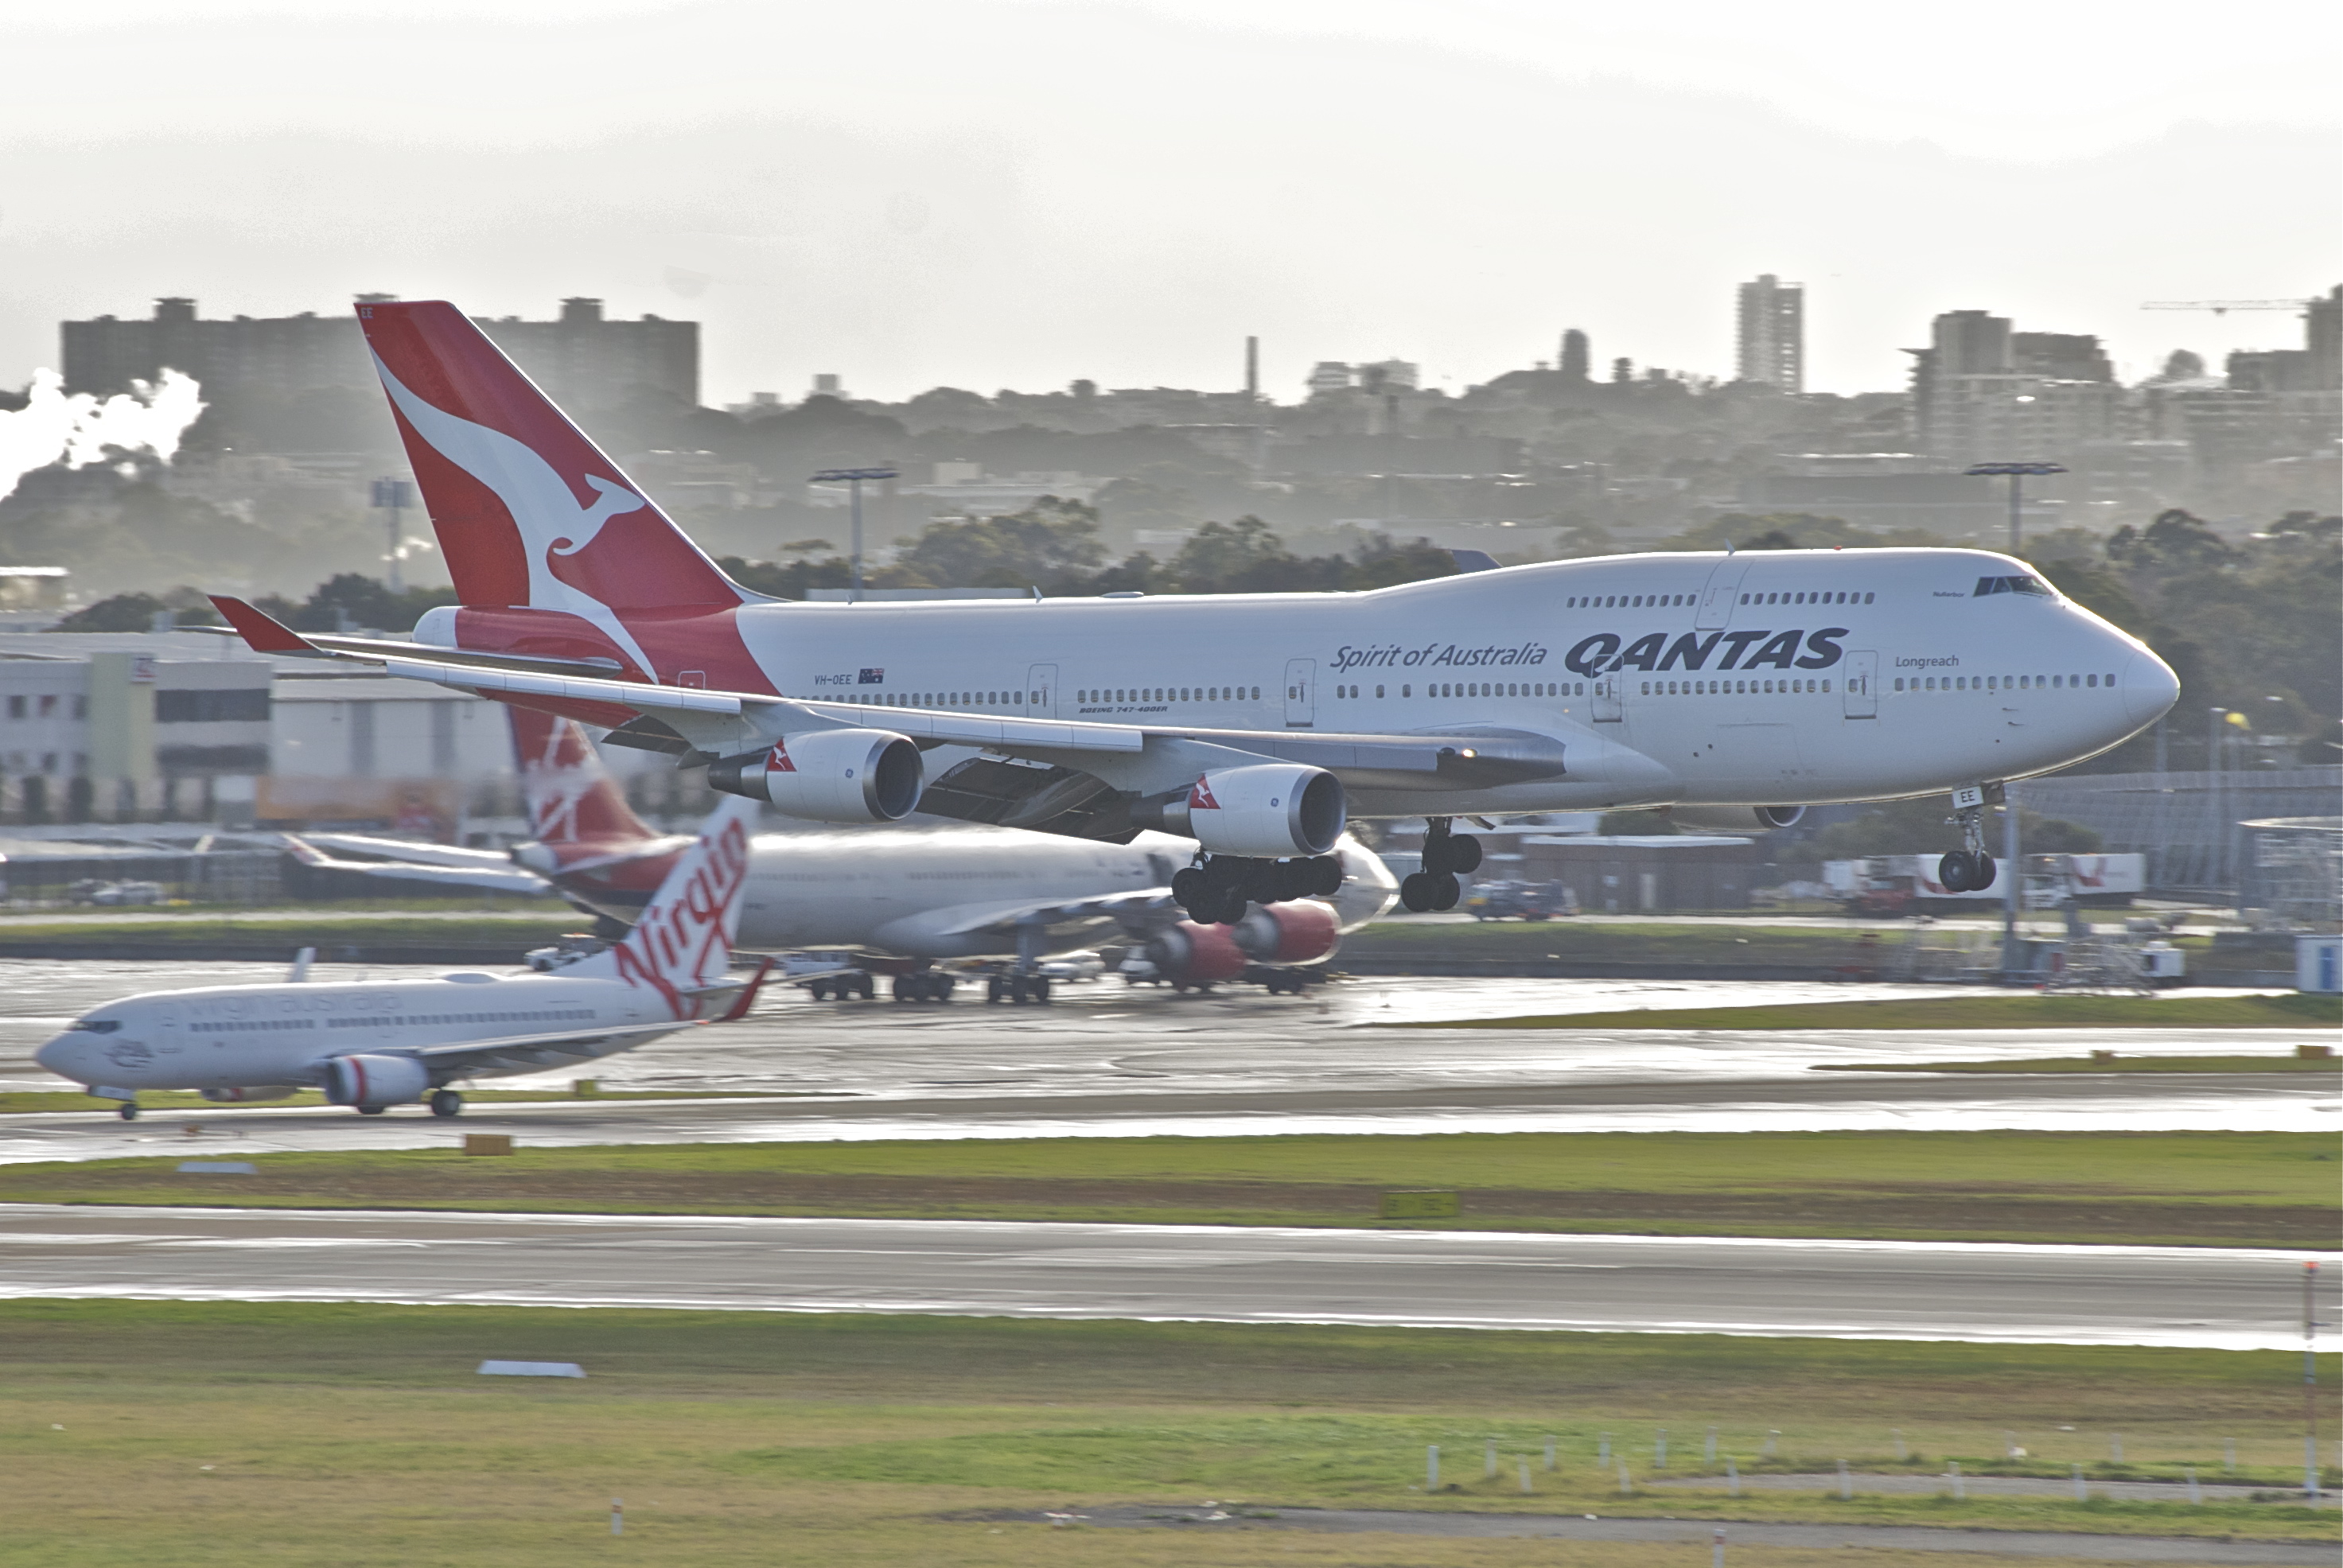 boeing 747 400 wikipediaa boeing 747 400er in service with qantas landing at sydney airport